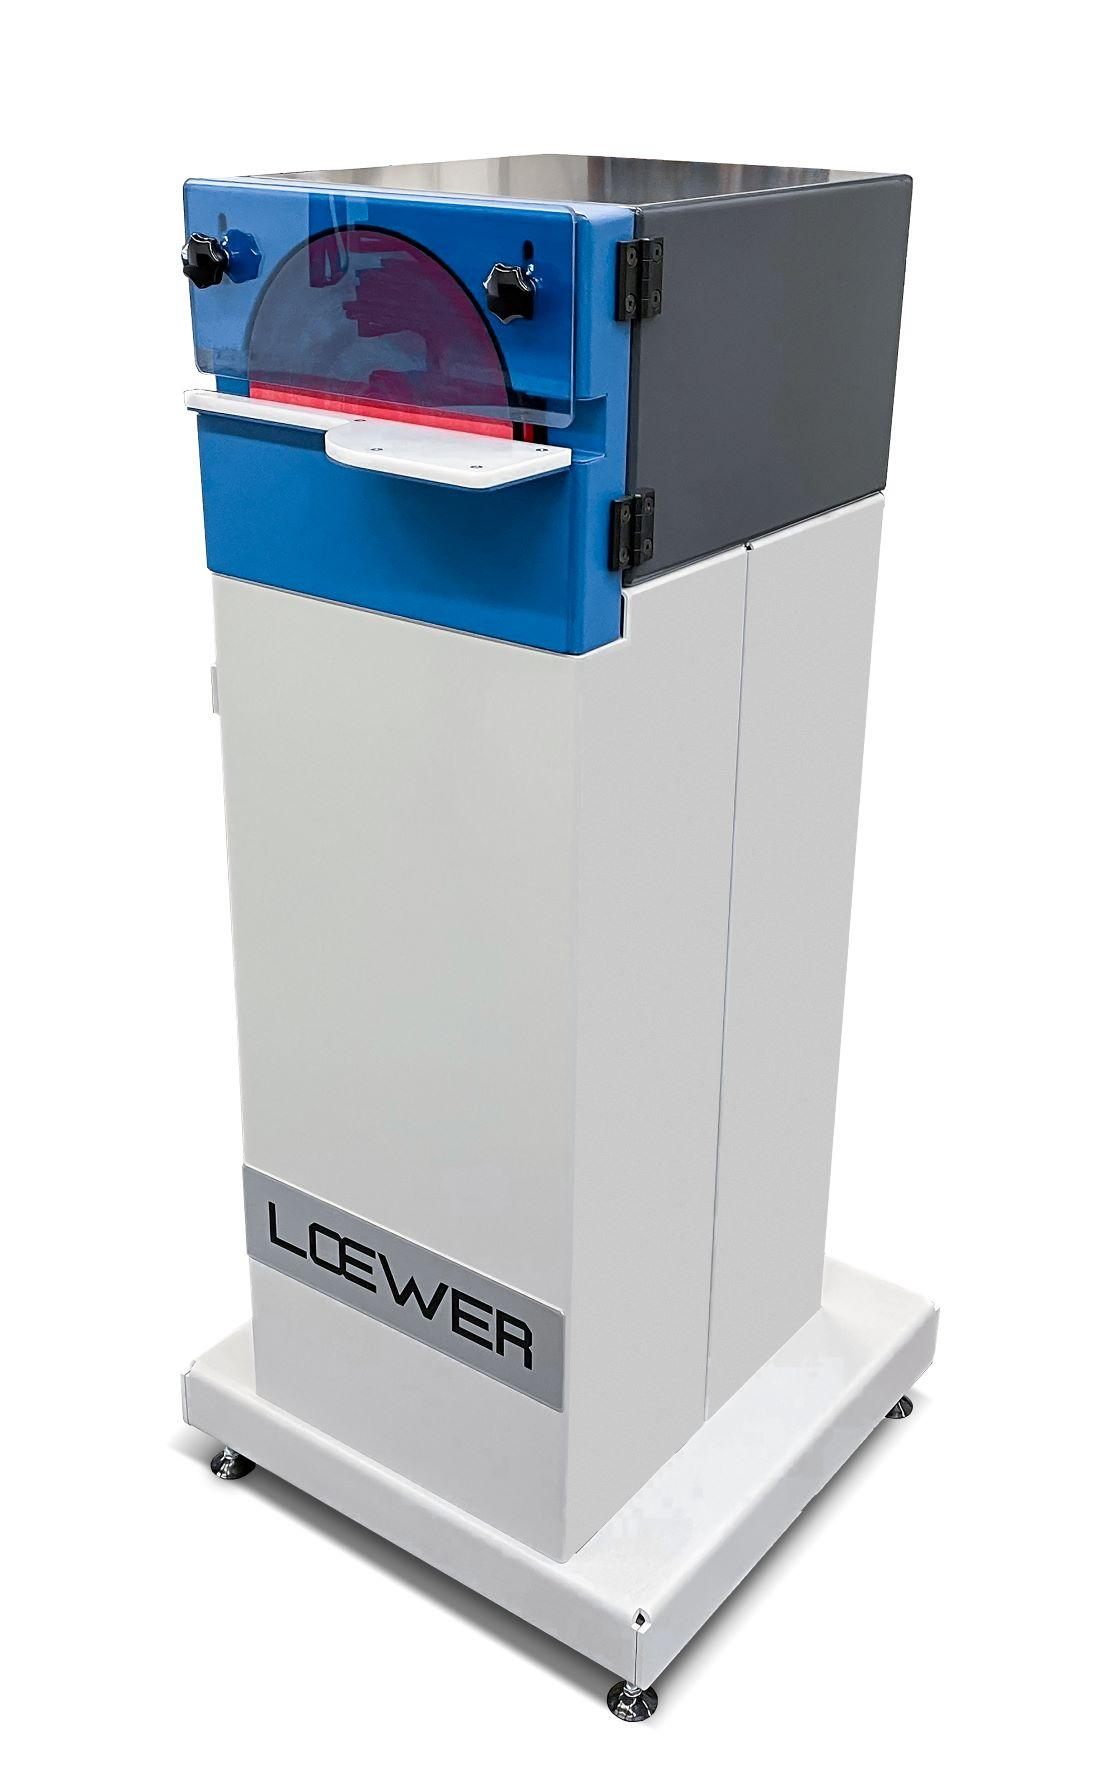 Loewer minispin joint 01 s